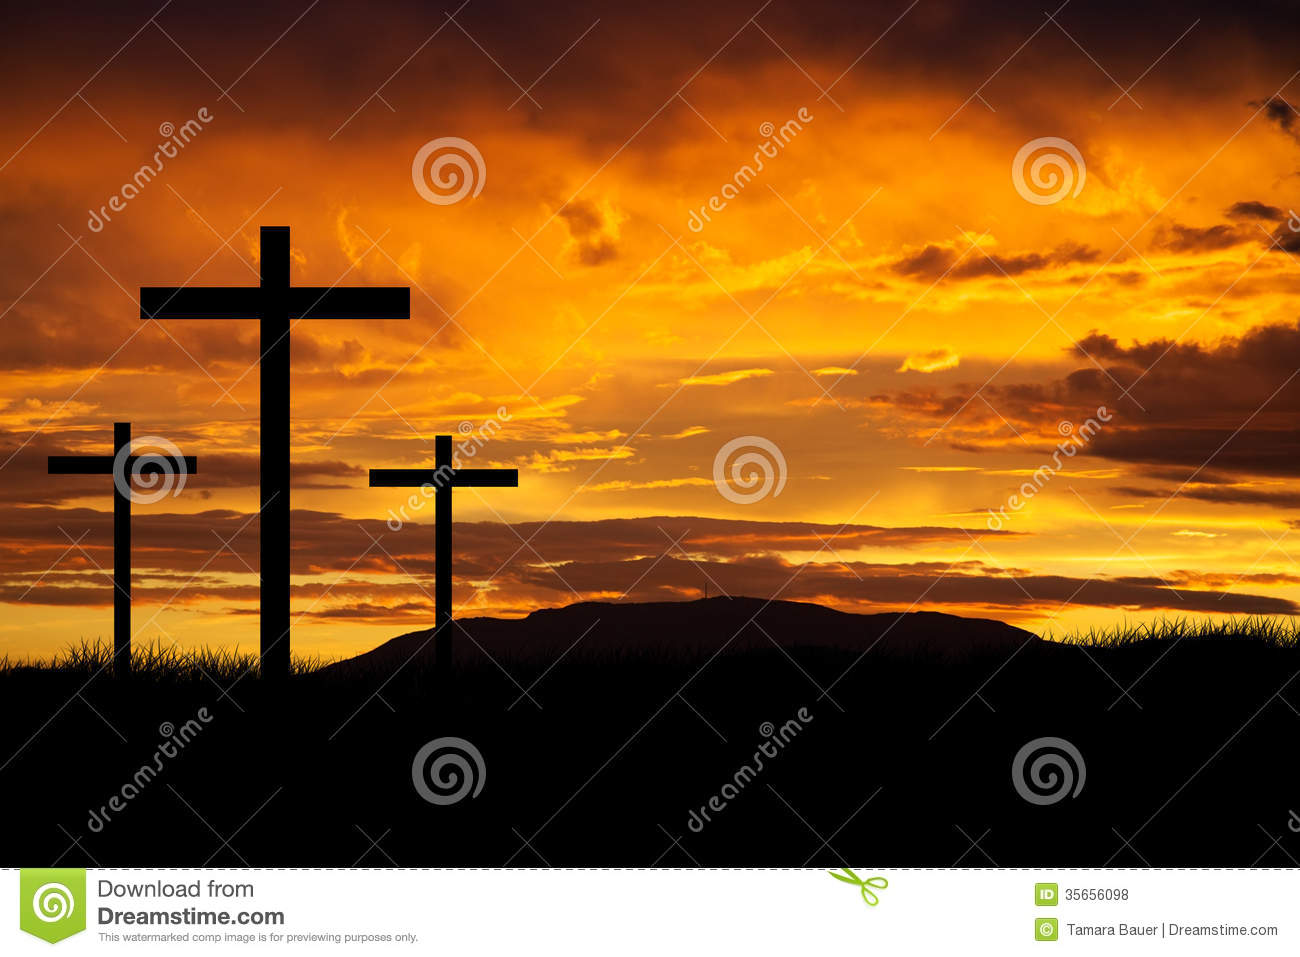 Three crosses at sunset representing the crucifixion of Jesus.